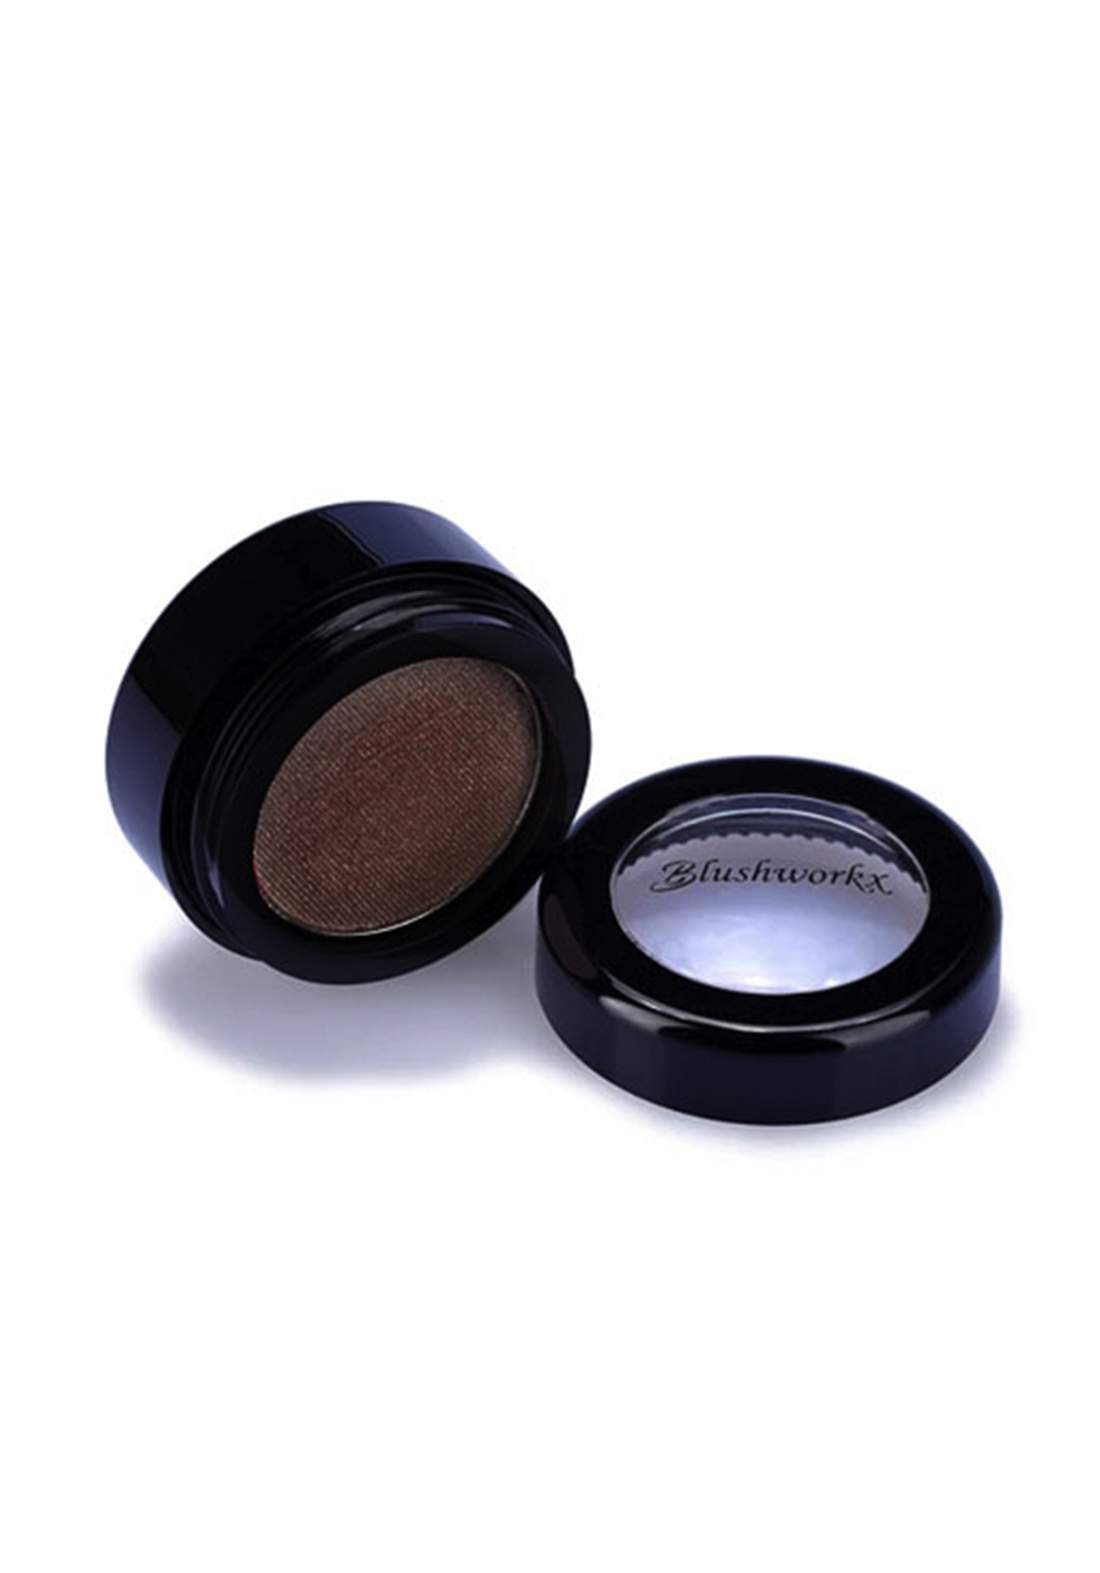 Blushworkx Hollywood Mineral Eye Color No.A2 Brown Silver 1.8g ظلال للعيون